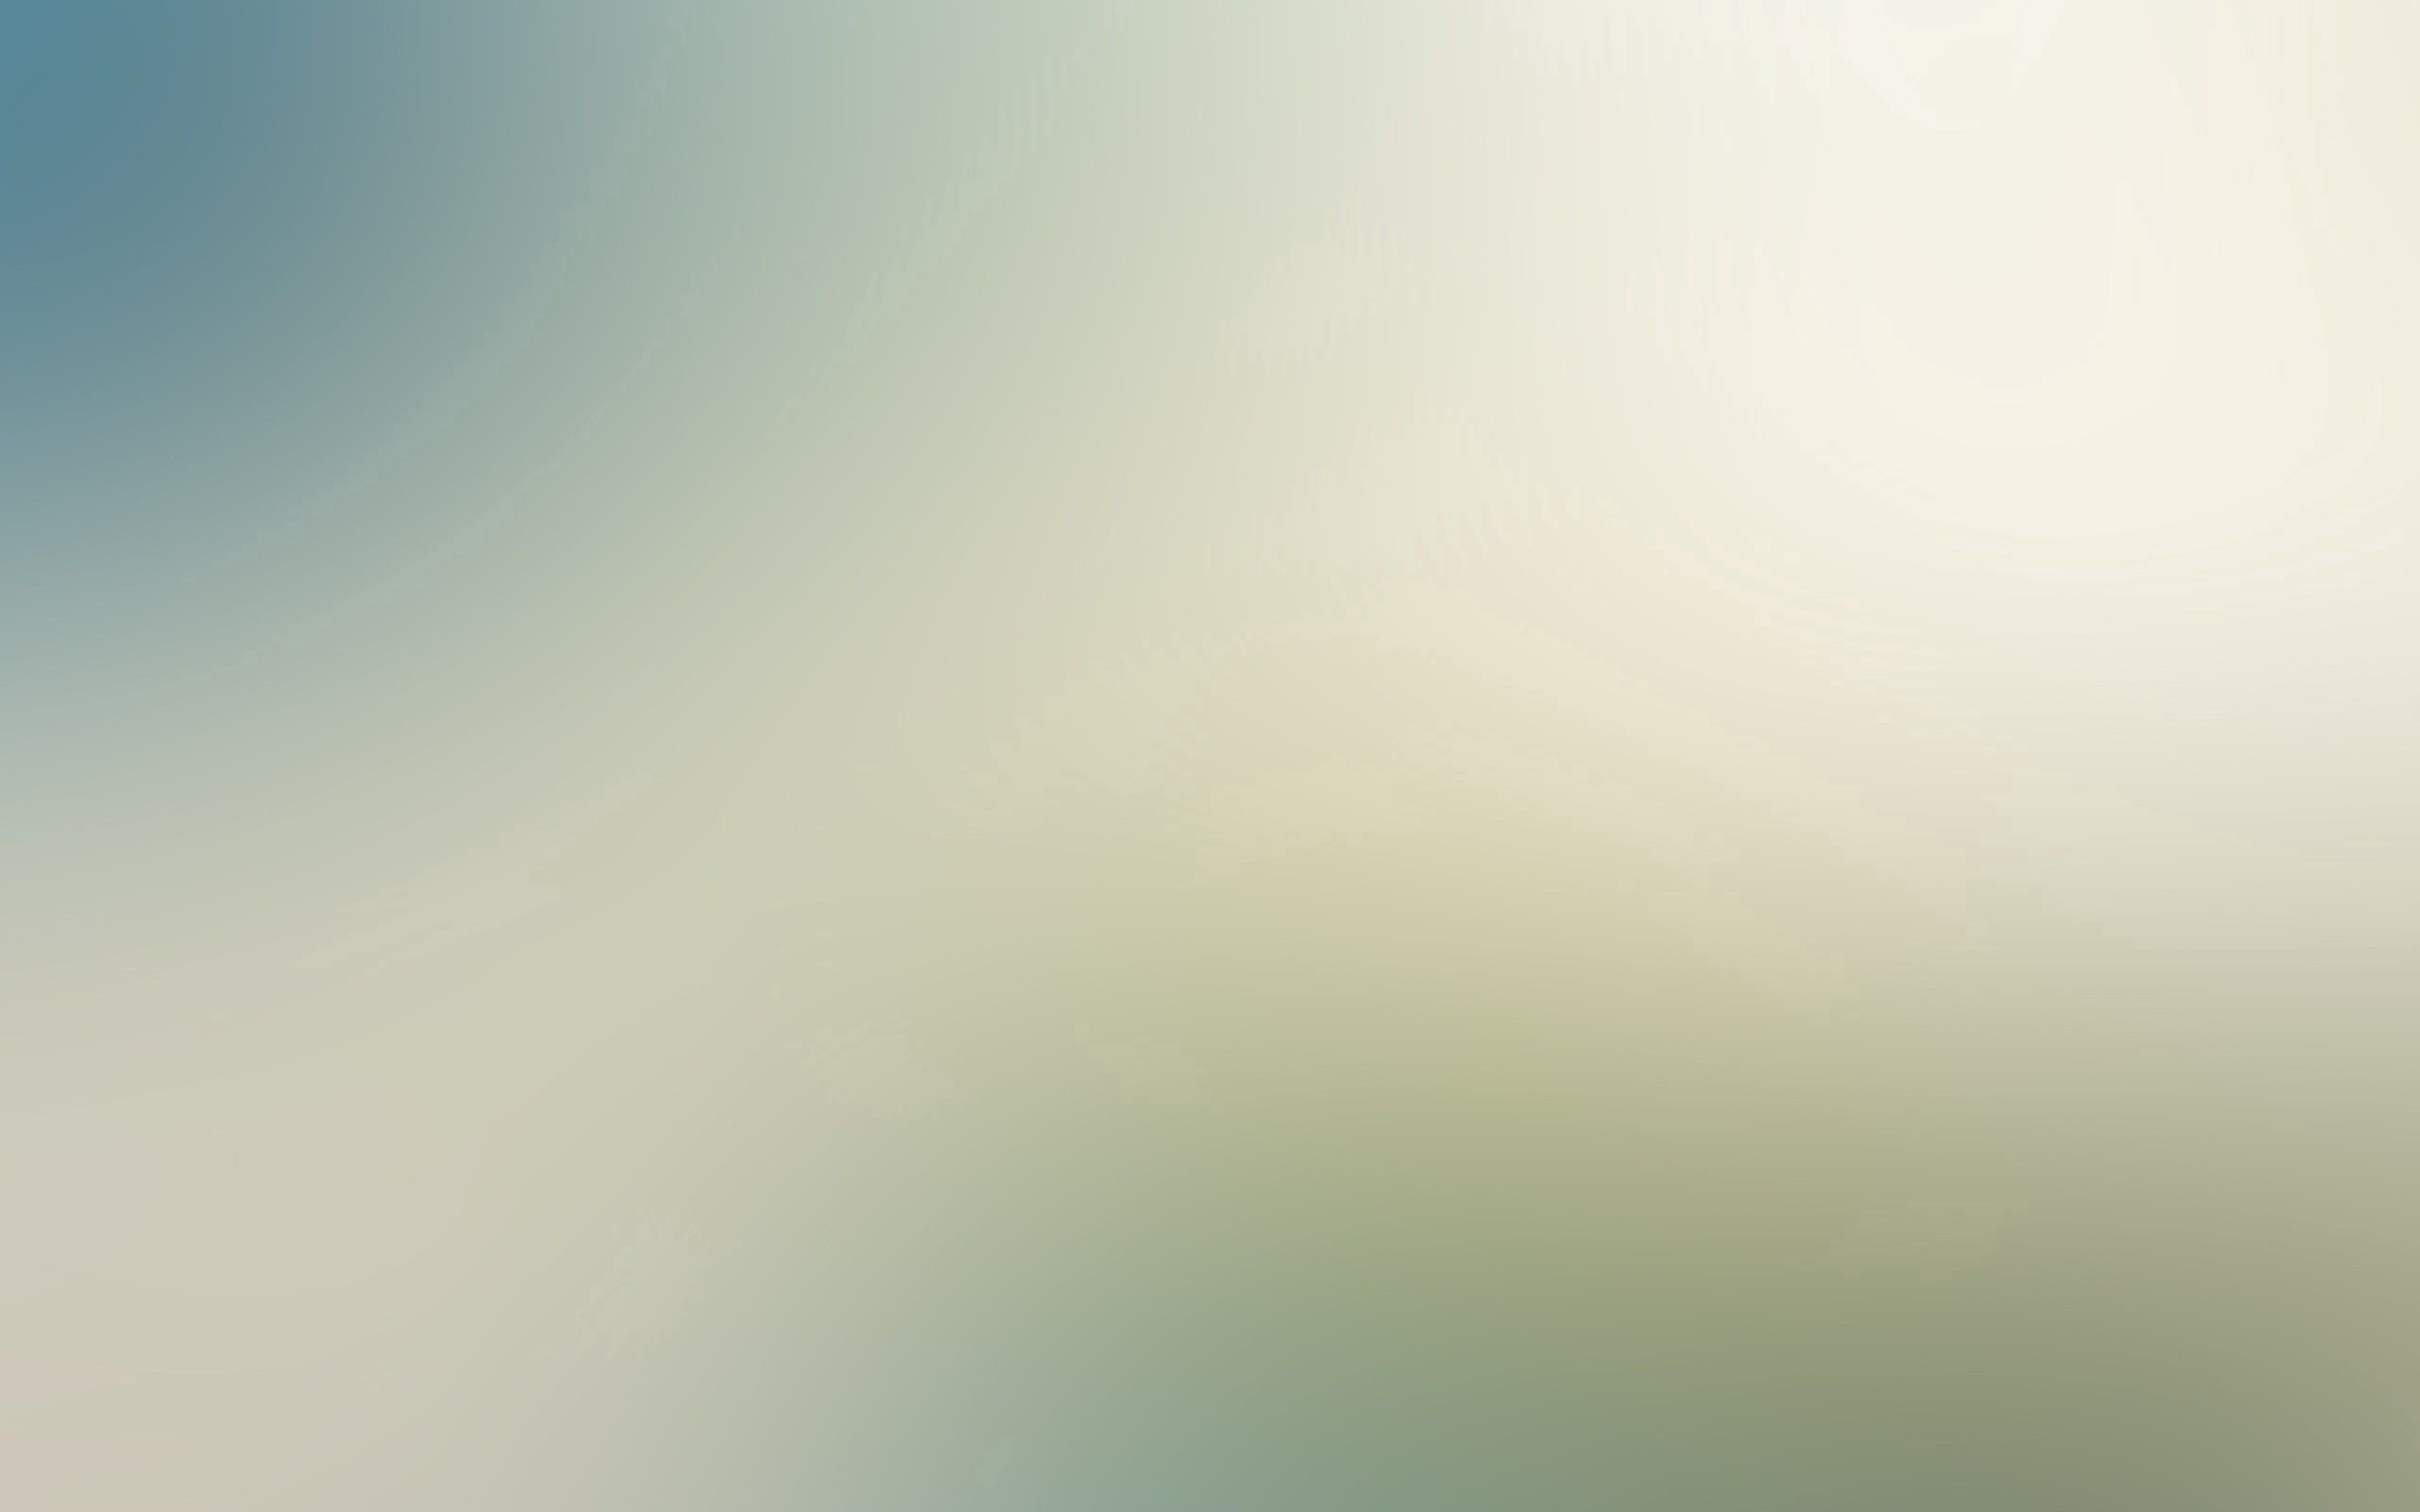 152275 download wallpaper Abstract, Shine, Light, Faded, Background screensavers and pictures for free